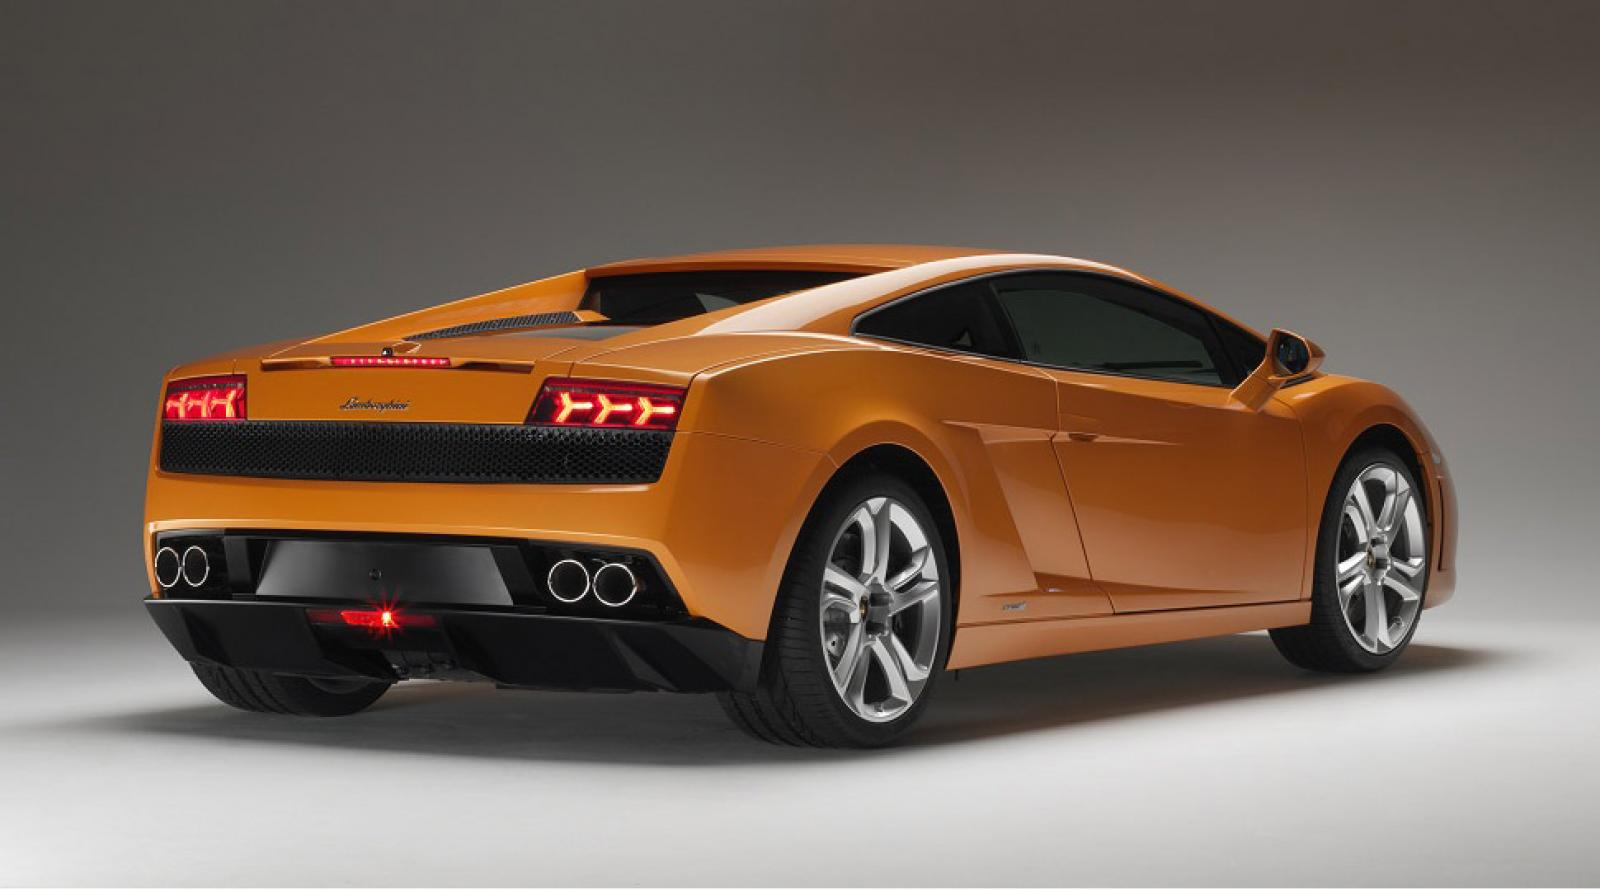 2012 lamborghini gallardo information and photos zombiedrive. Black Bedroom Furniture Sets. Home Design Ideas